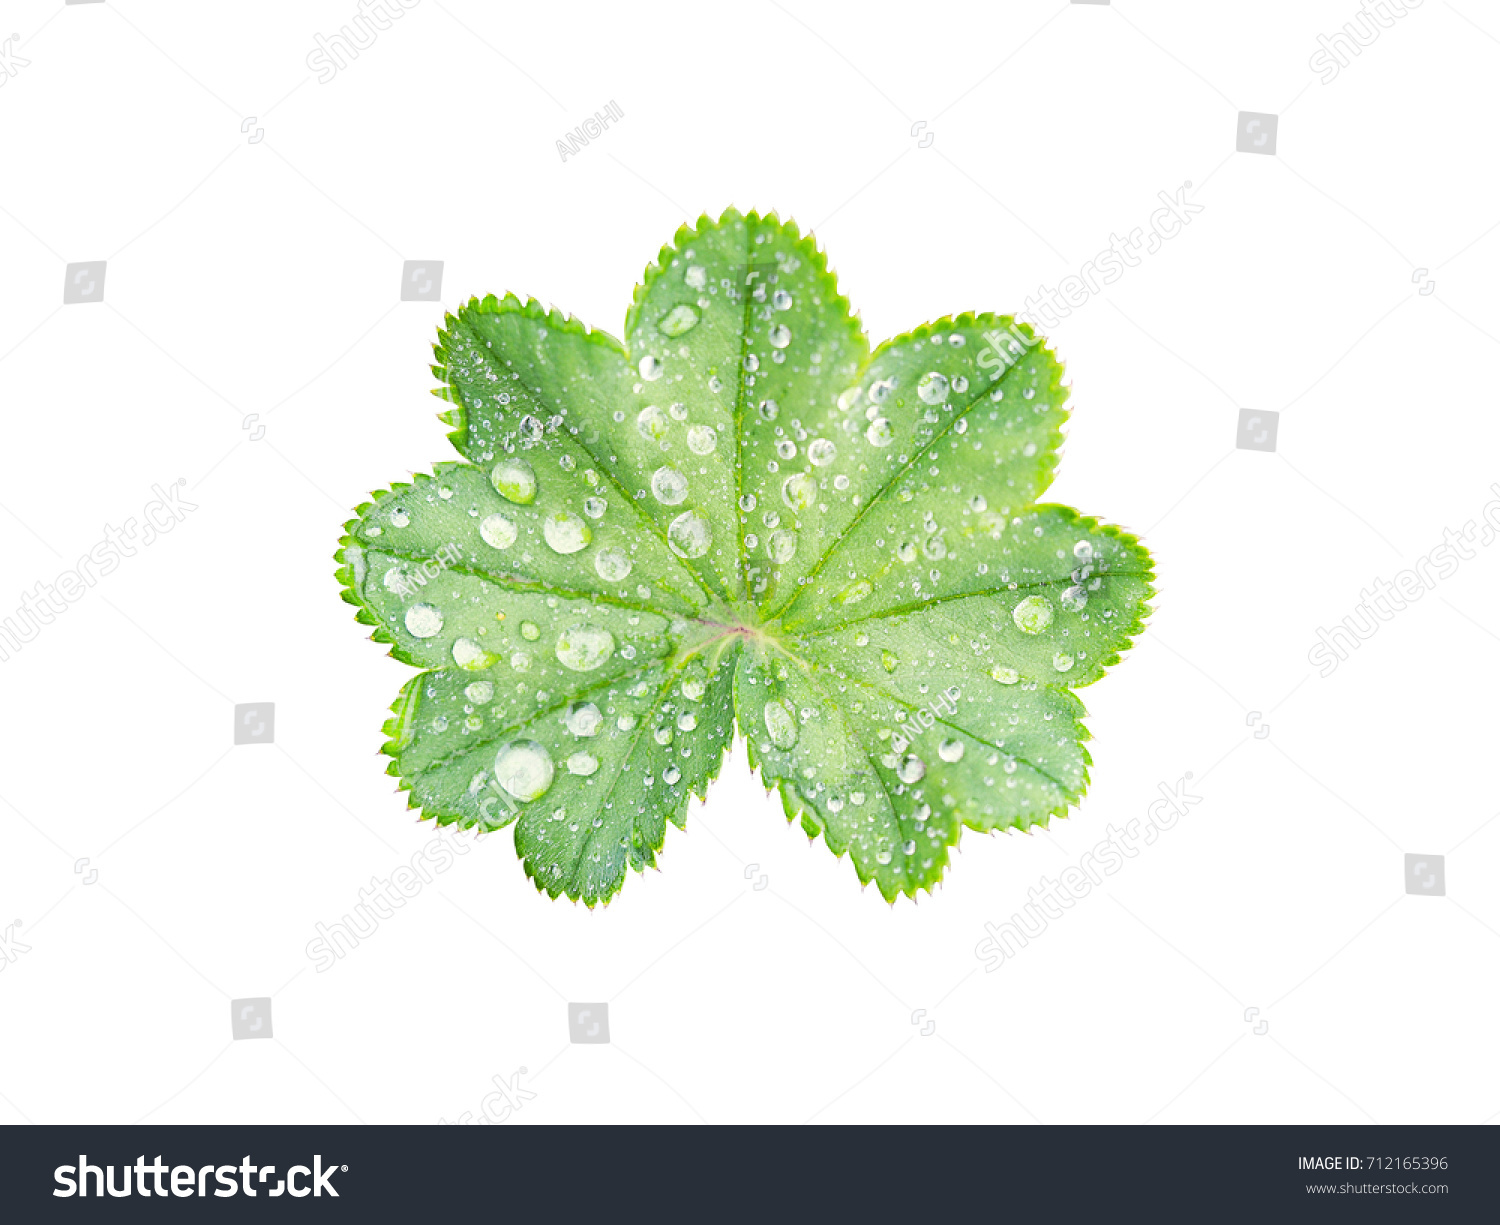 Alchemilla vulgaris, common lady's mantle. Leaf with a wavy edge covered with droplets of dew isolated on white background.  Top view #712165396